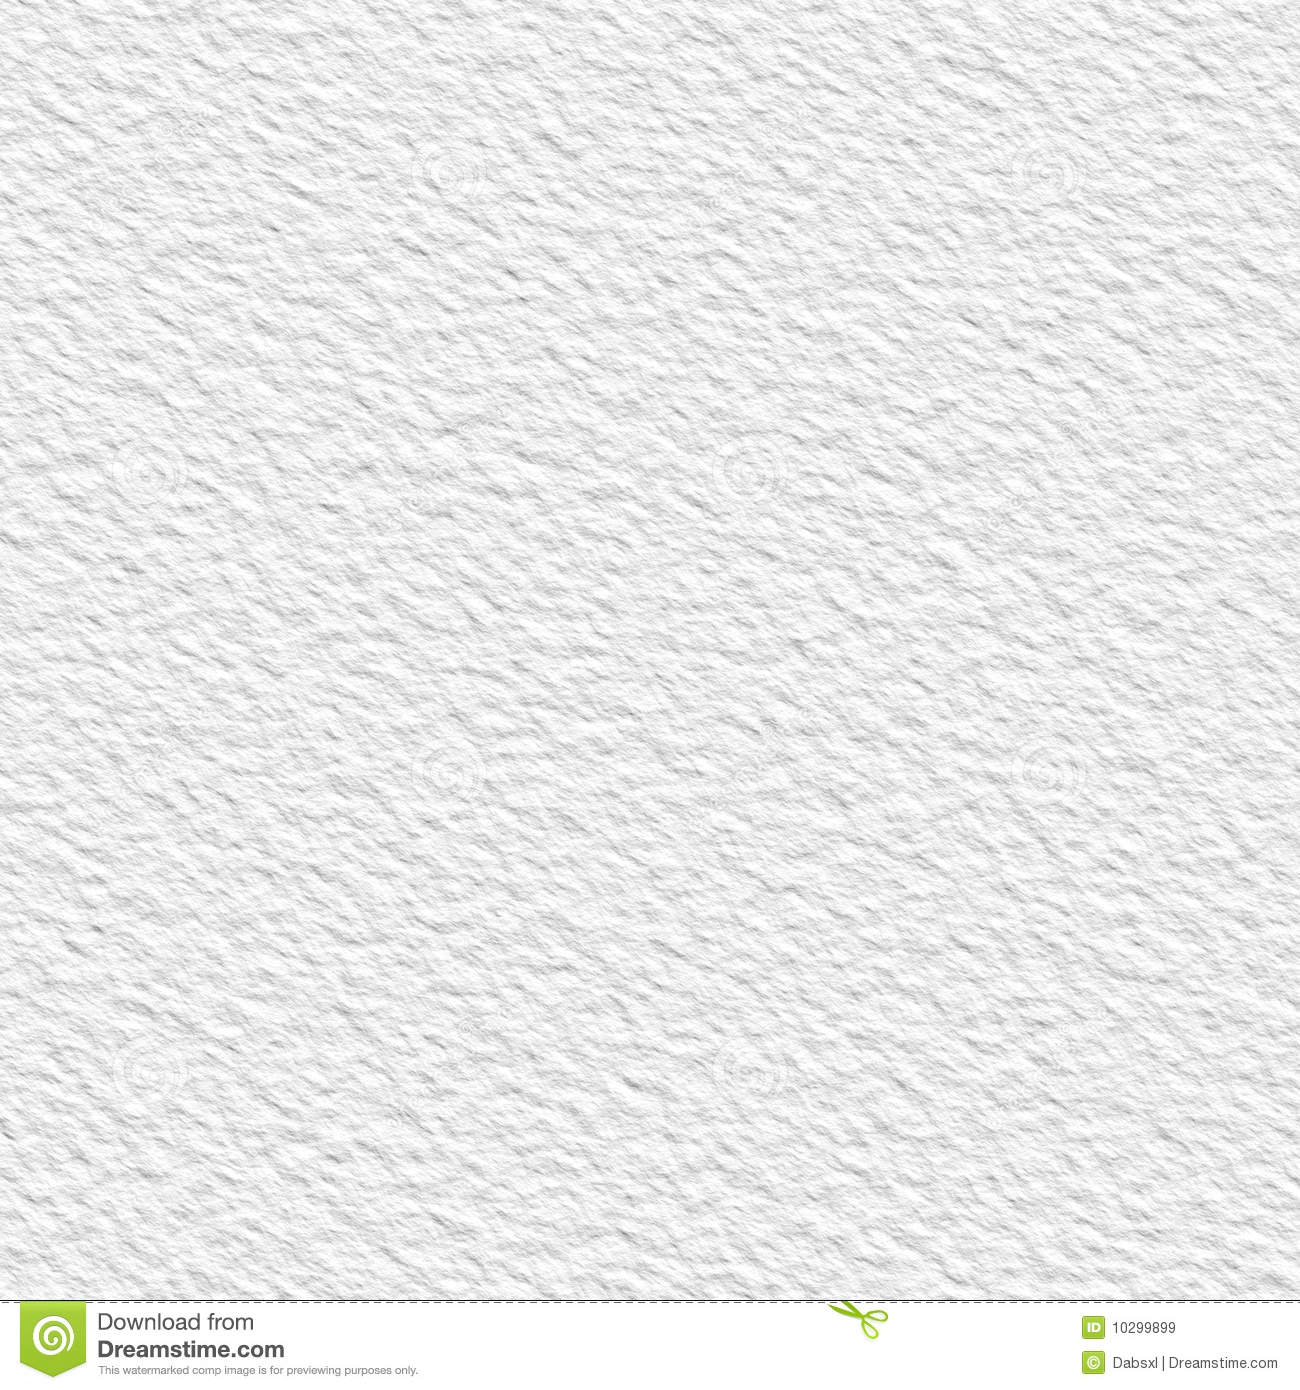 White Wall Texture : White Wall Texture Royalty Free Stock Images - Image: 10299899